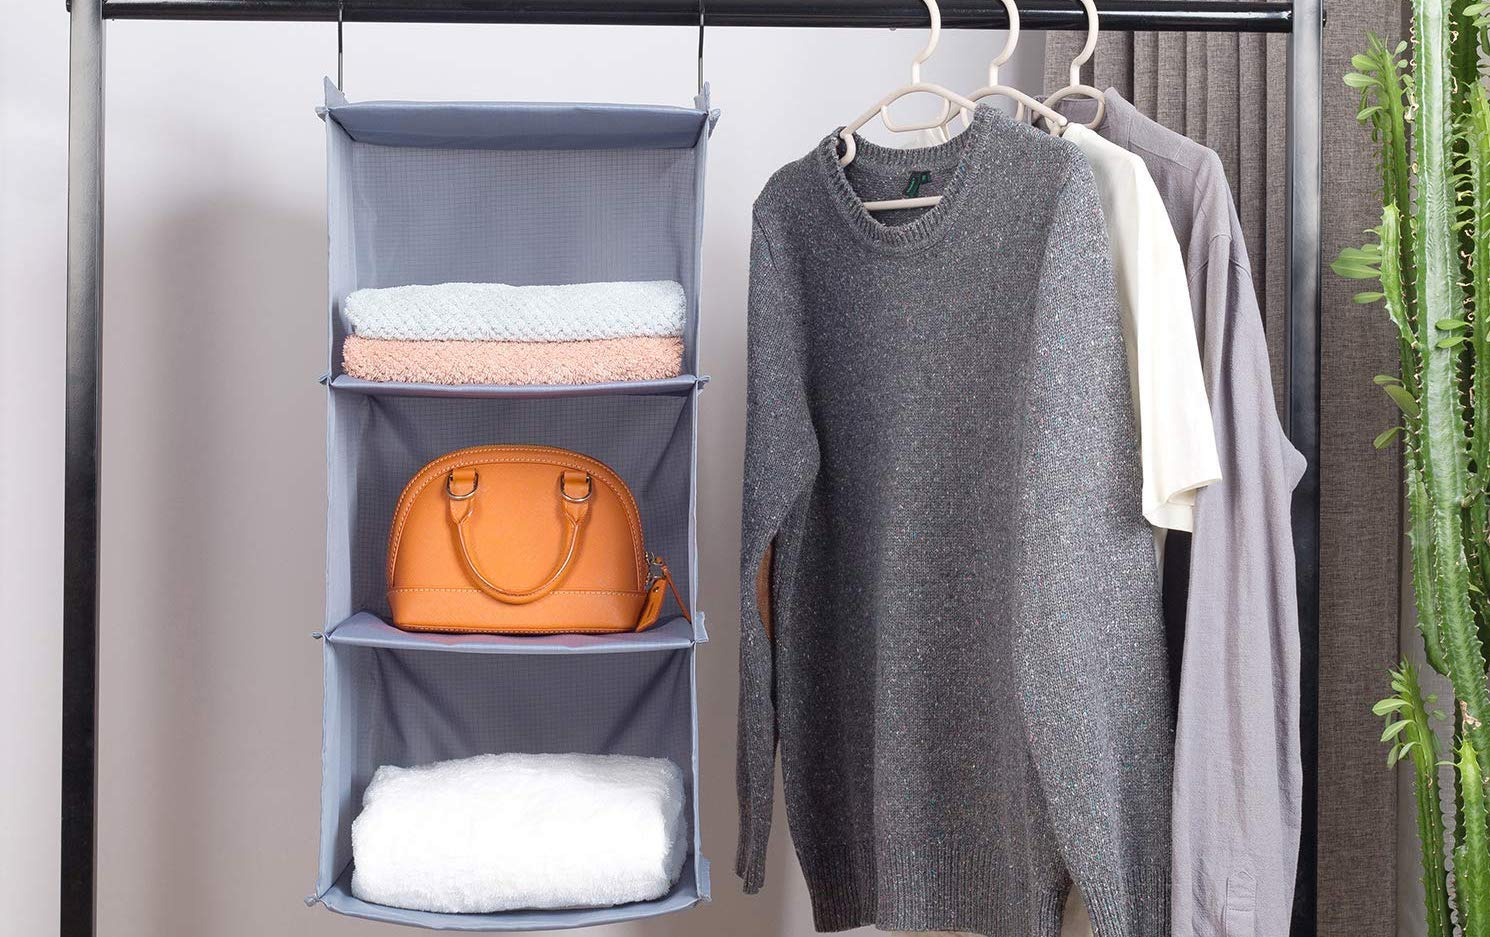 Top 10 Best Hanging Closet Organizers In 2020 Reviews